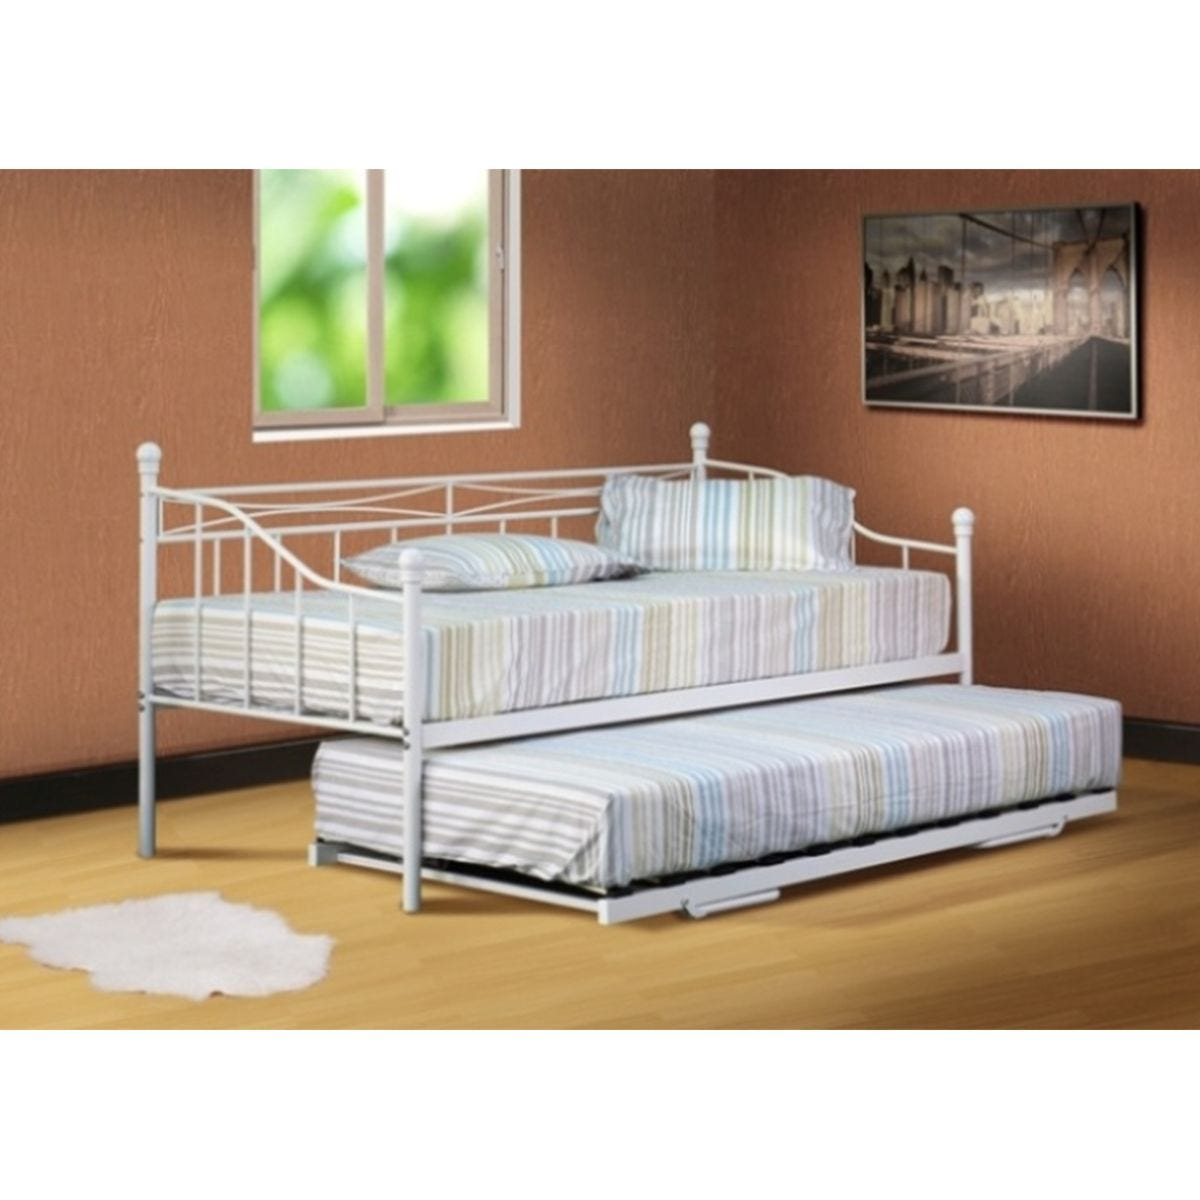 Alicia Budget Metal Day Bed Without Trundle White